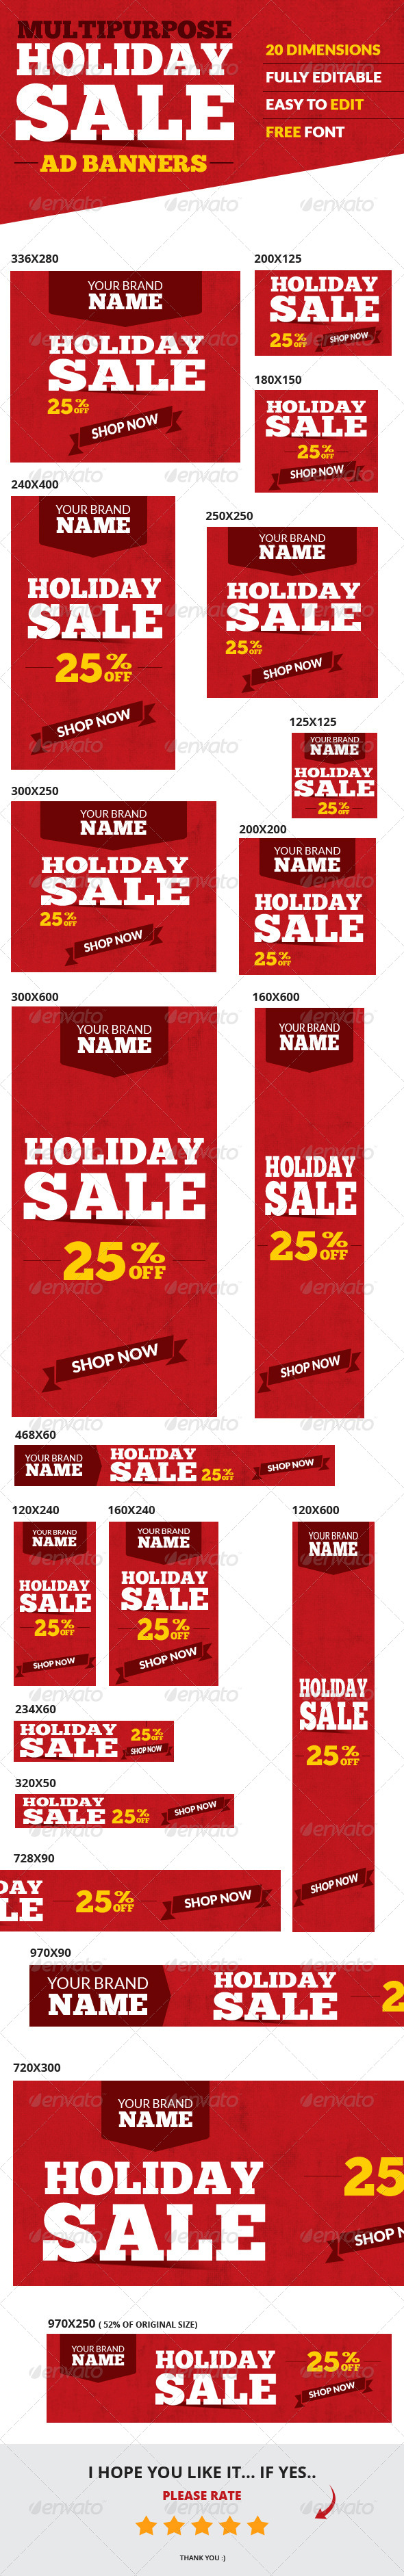 Holiday Sale Web Ad Banners - Multipurpose - Banners & Ads Web Elements